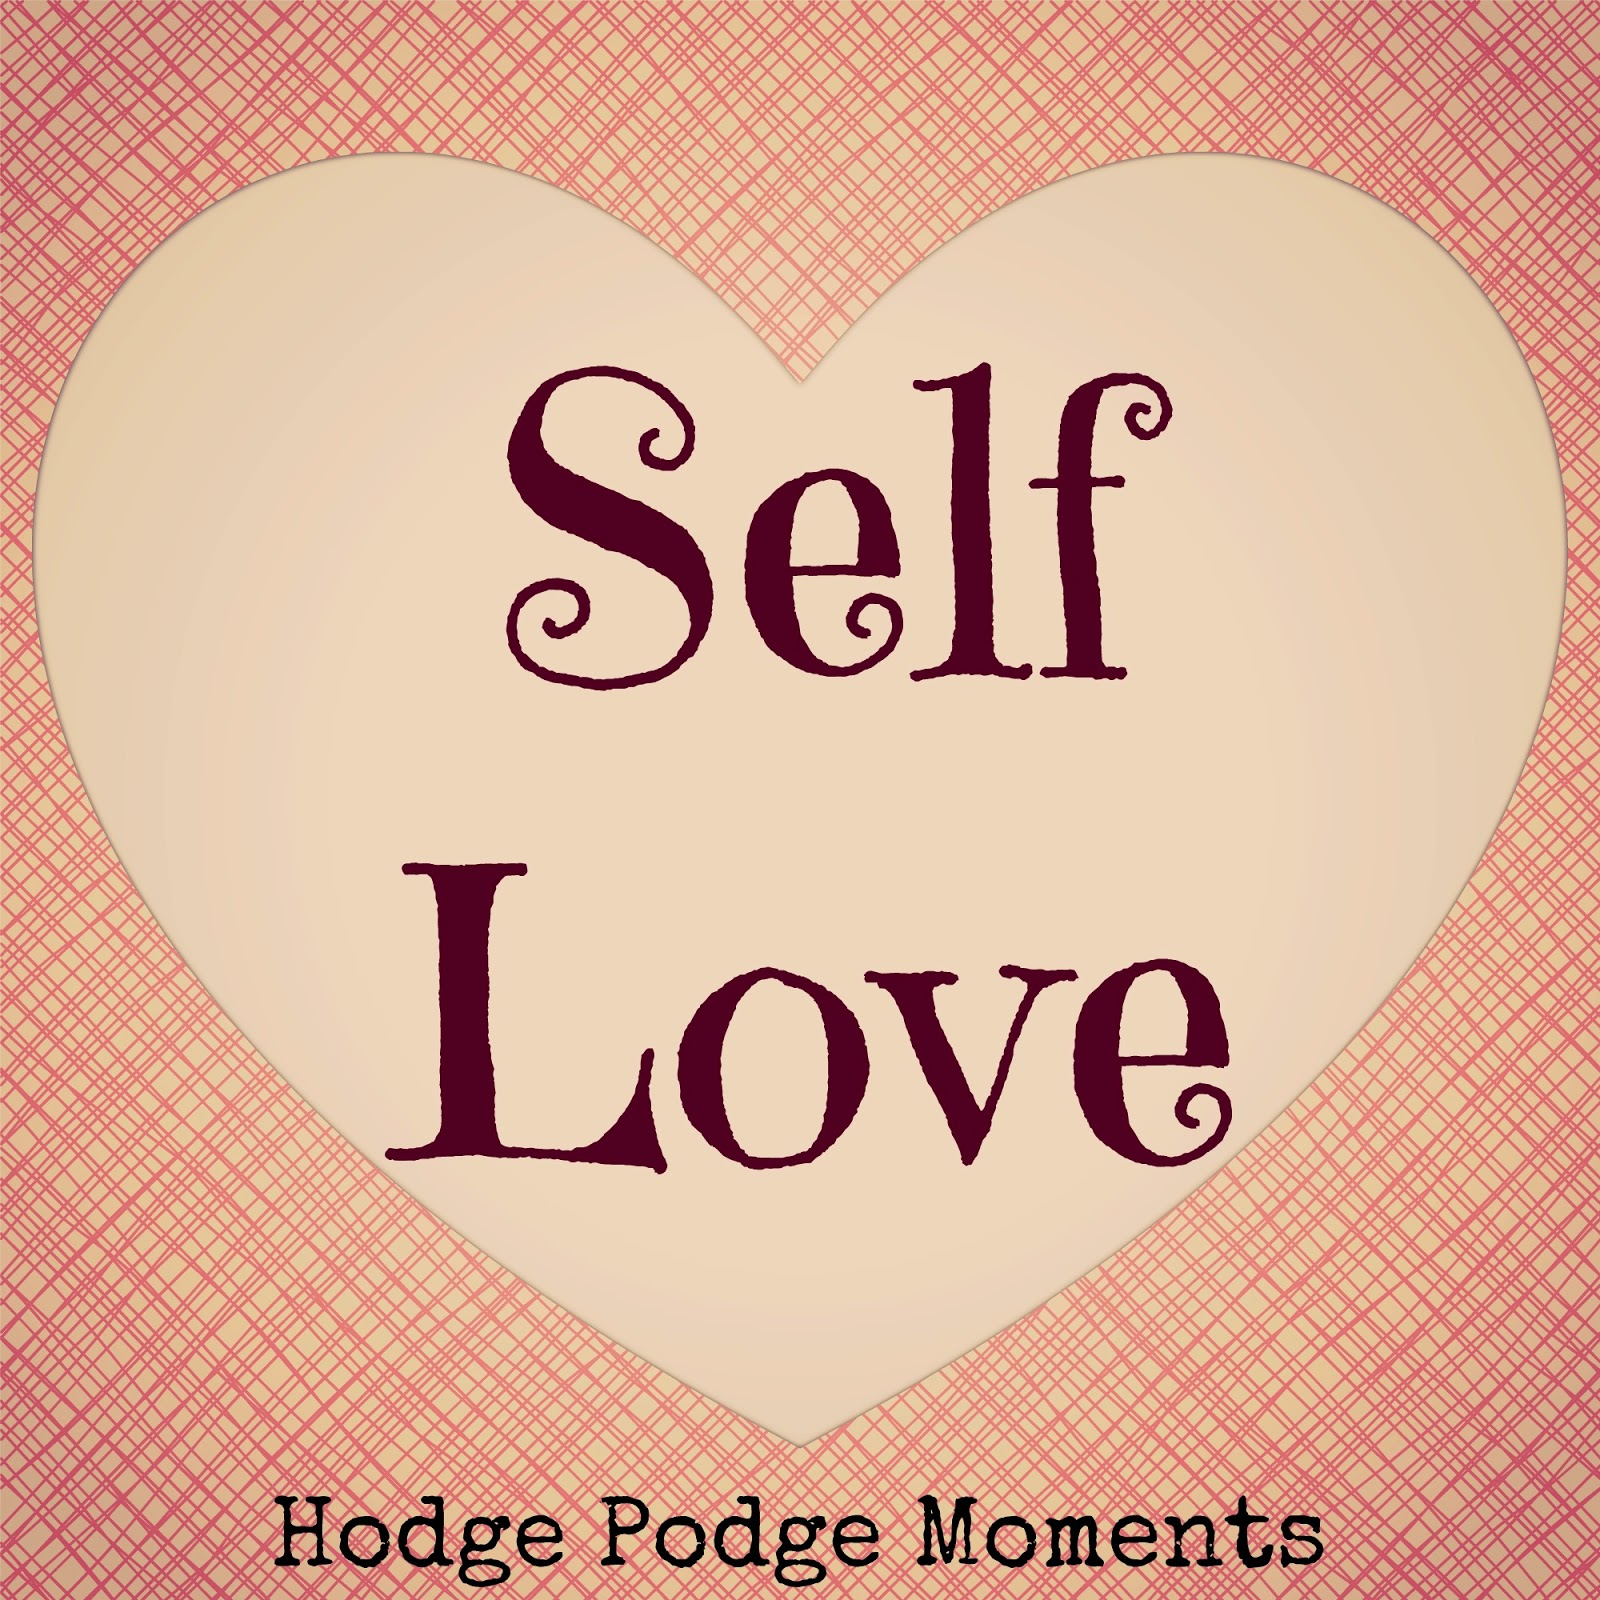 http://www.hodgepodgemoments.com/2015/02/show-yourself-some-love.html